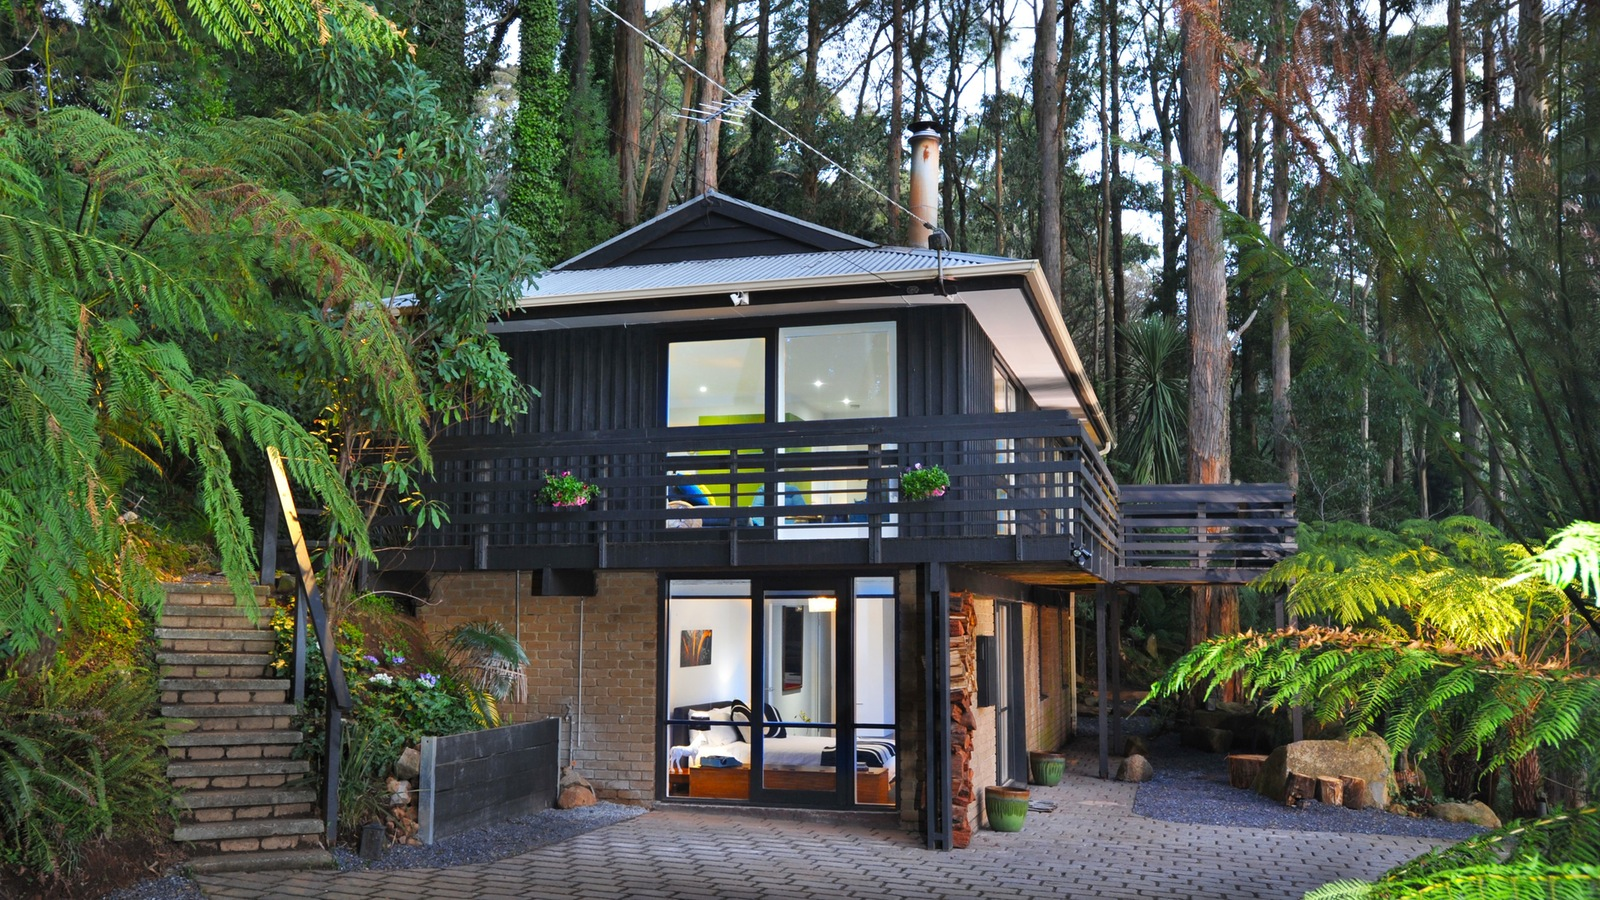 Misty Woods Retreat at the forest edge